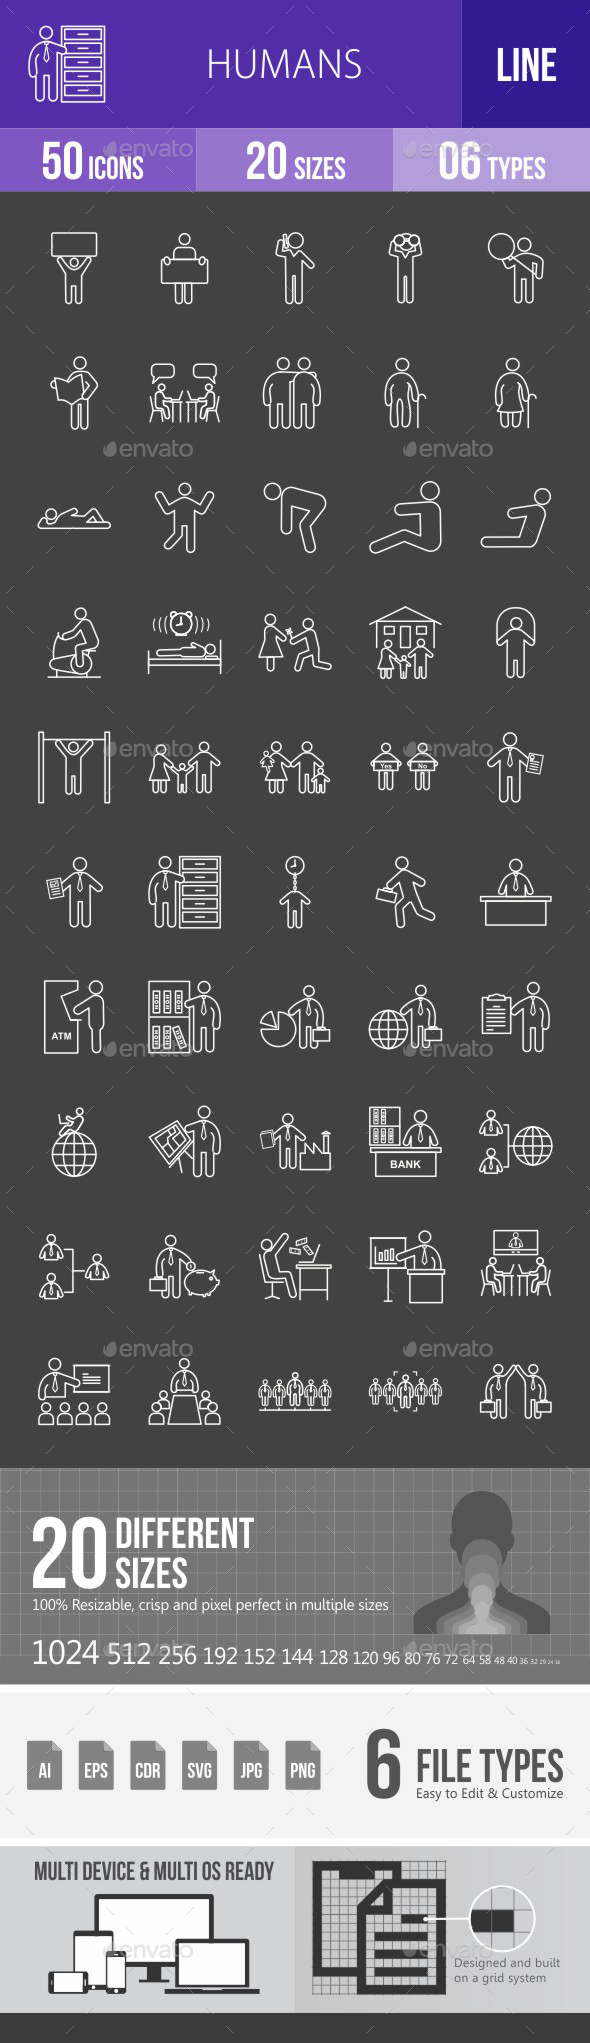 Humans Line Inverted Icons - Icons